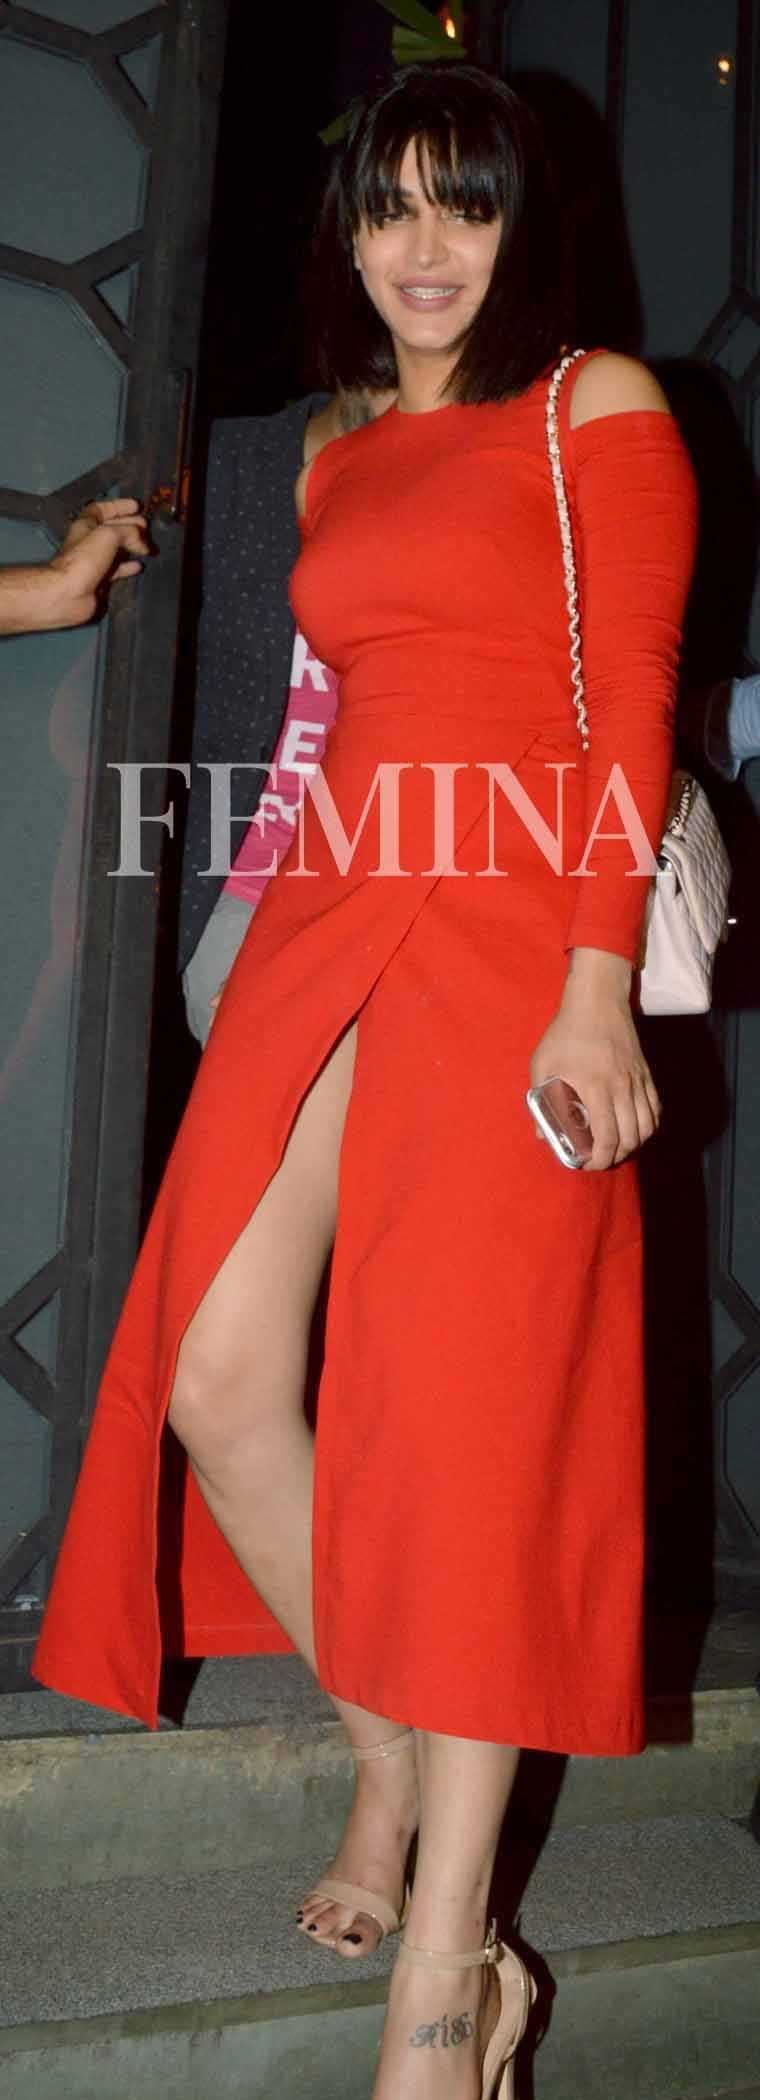 The Dress That Will Replace The Lbd Femina In